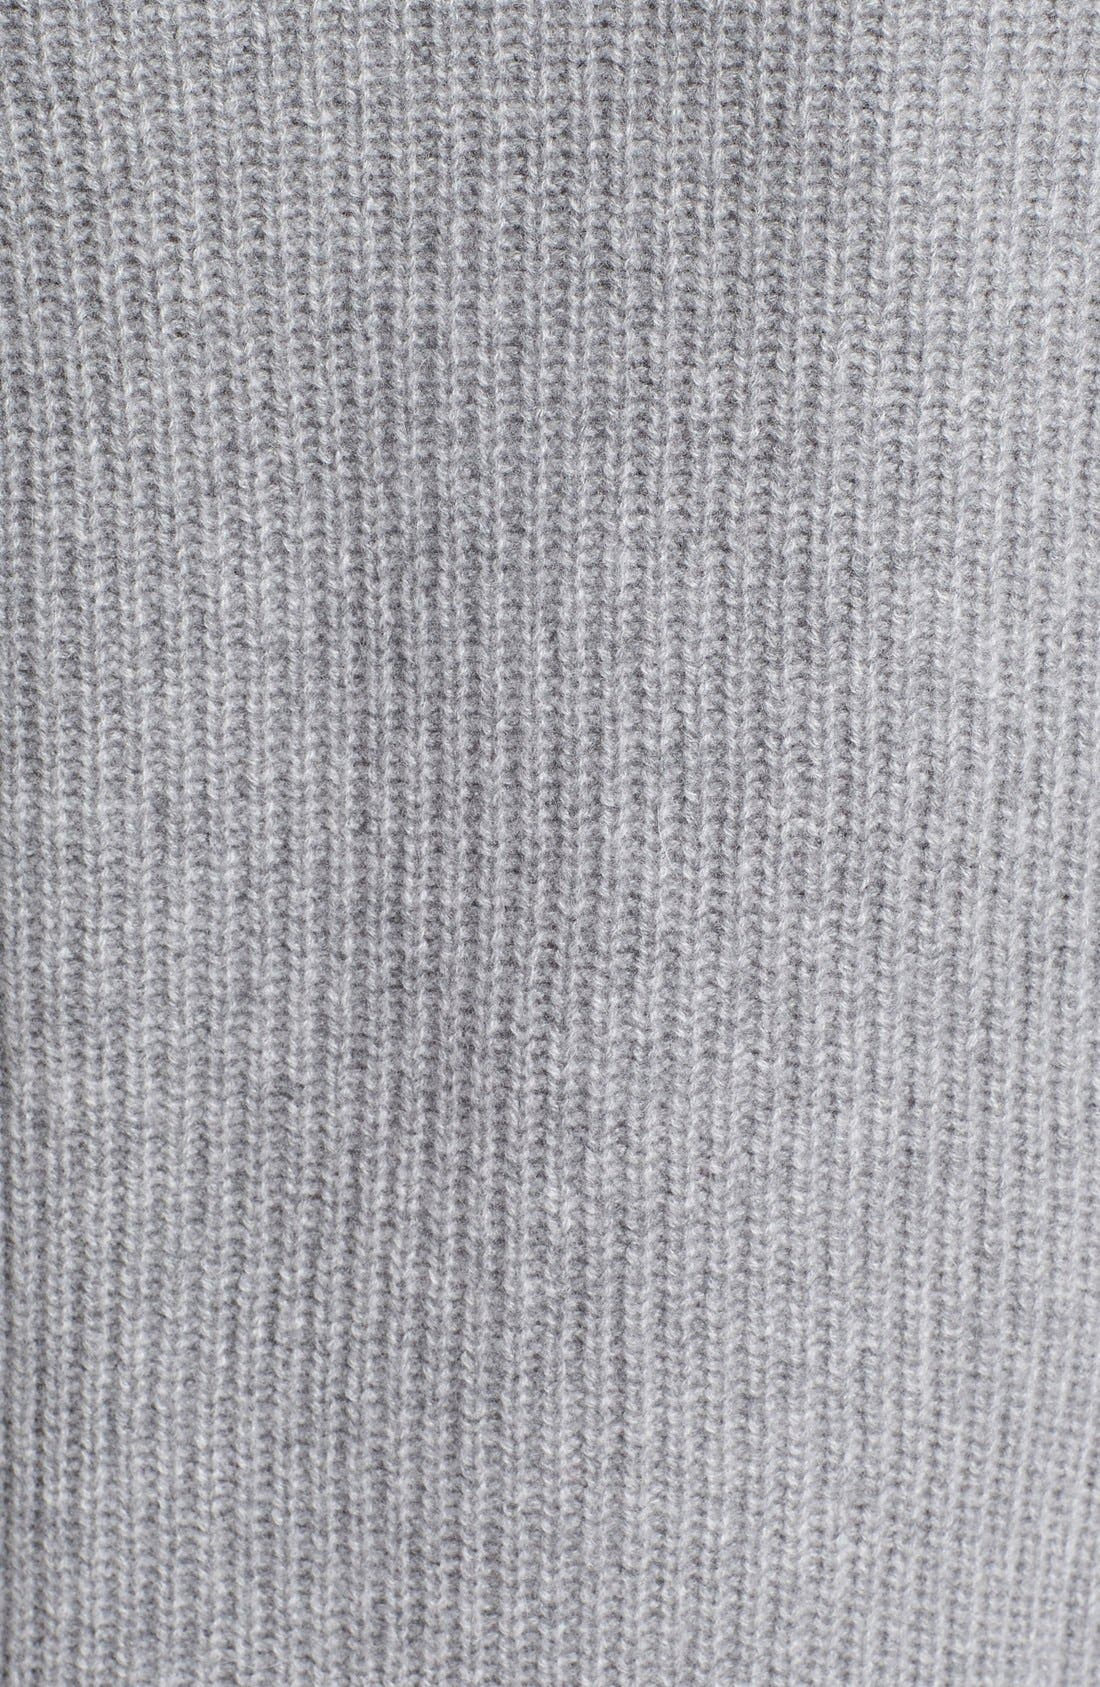 Alternate Image 3  - autumn cashmere Elbow Patch Chunky Cashmere Knit Sweater